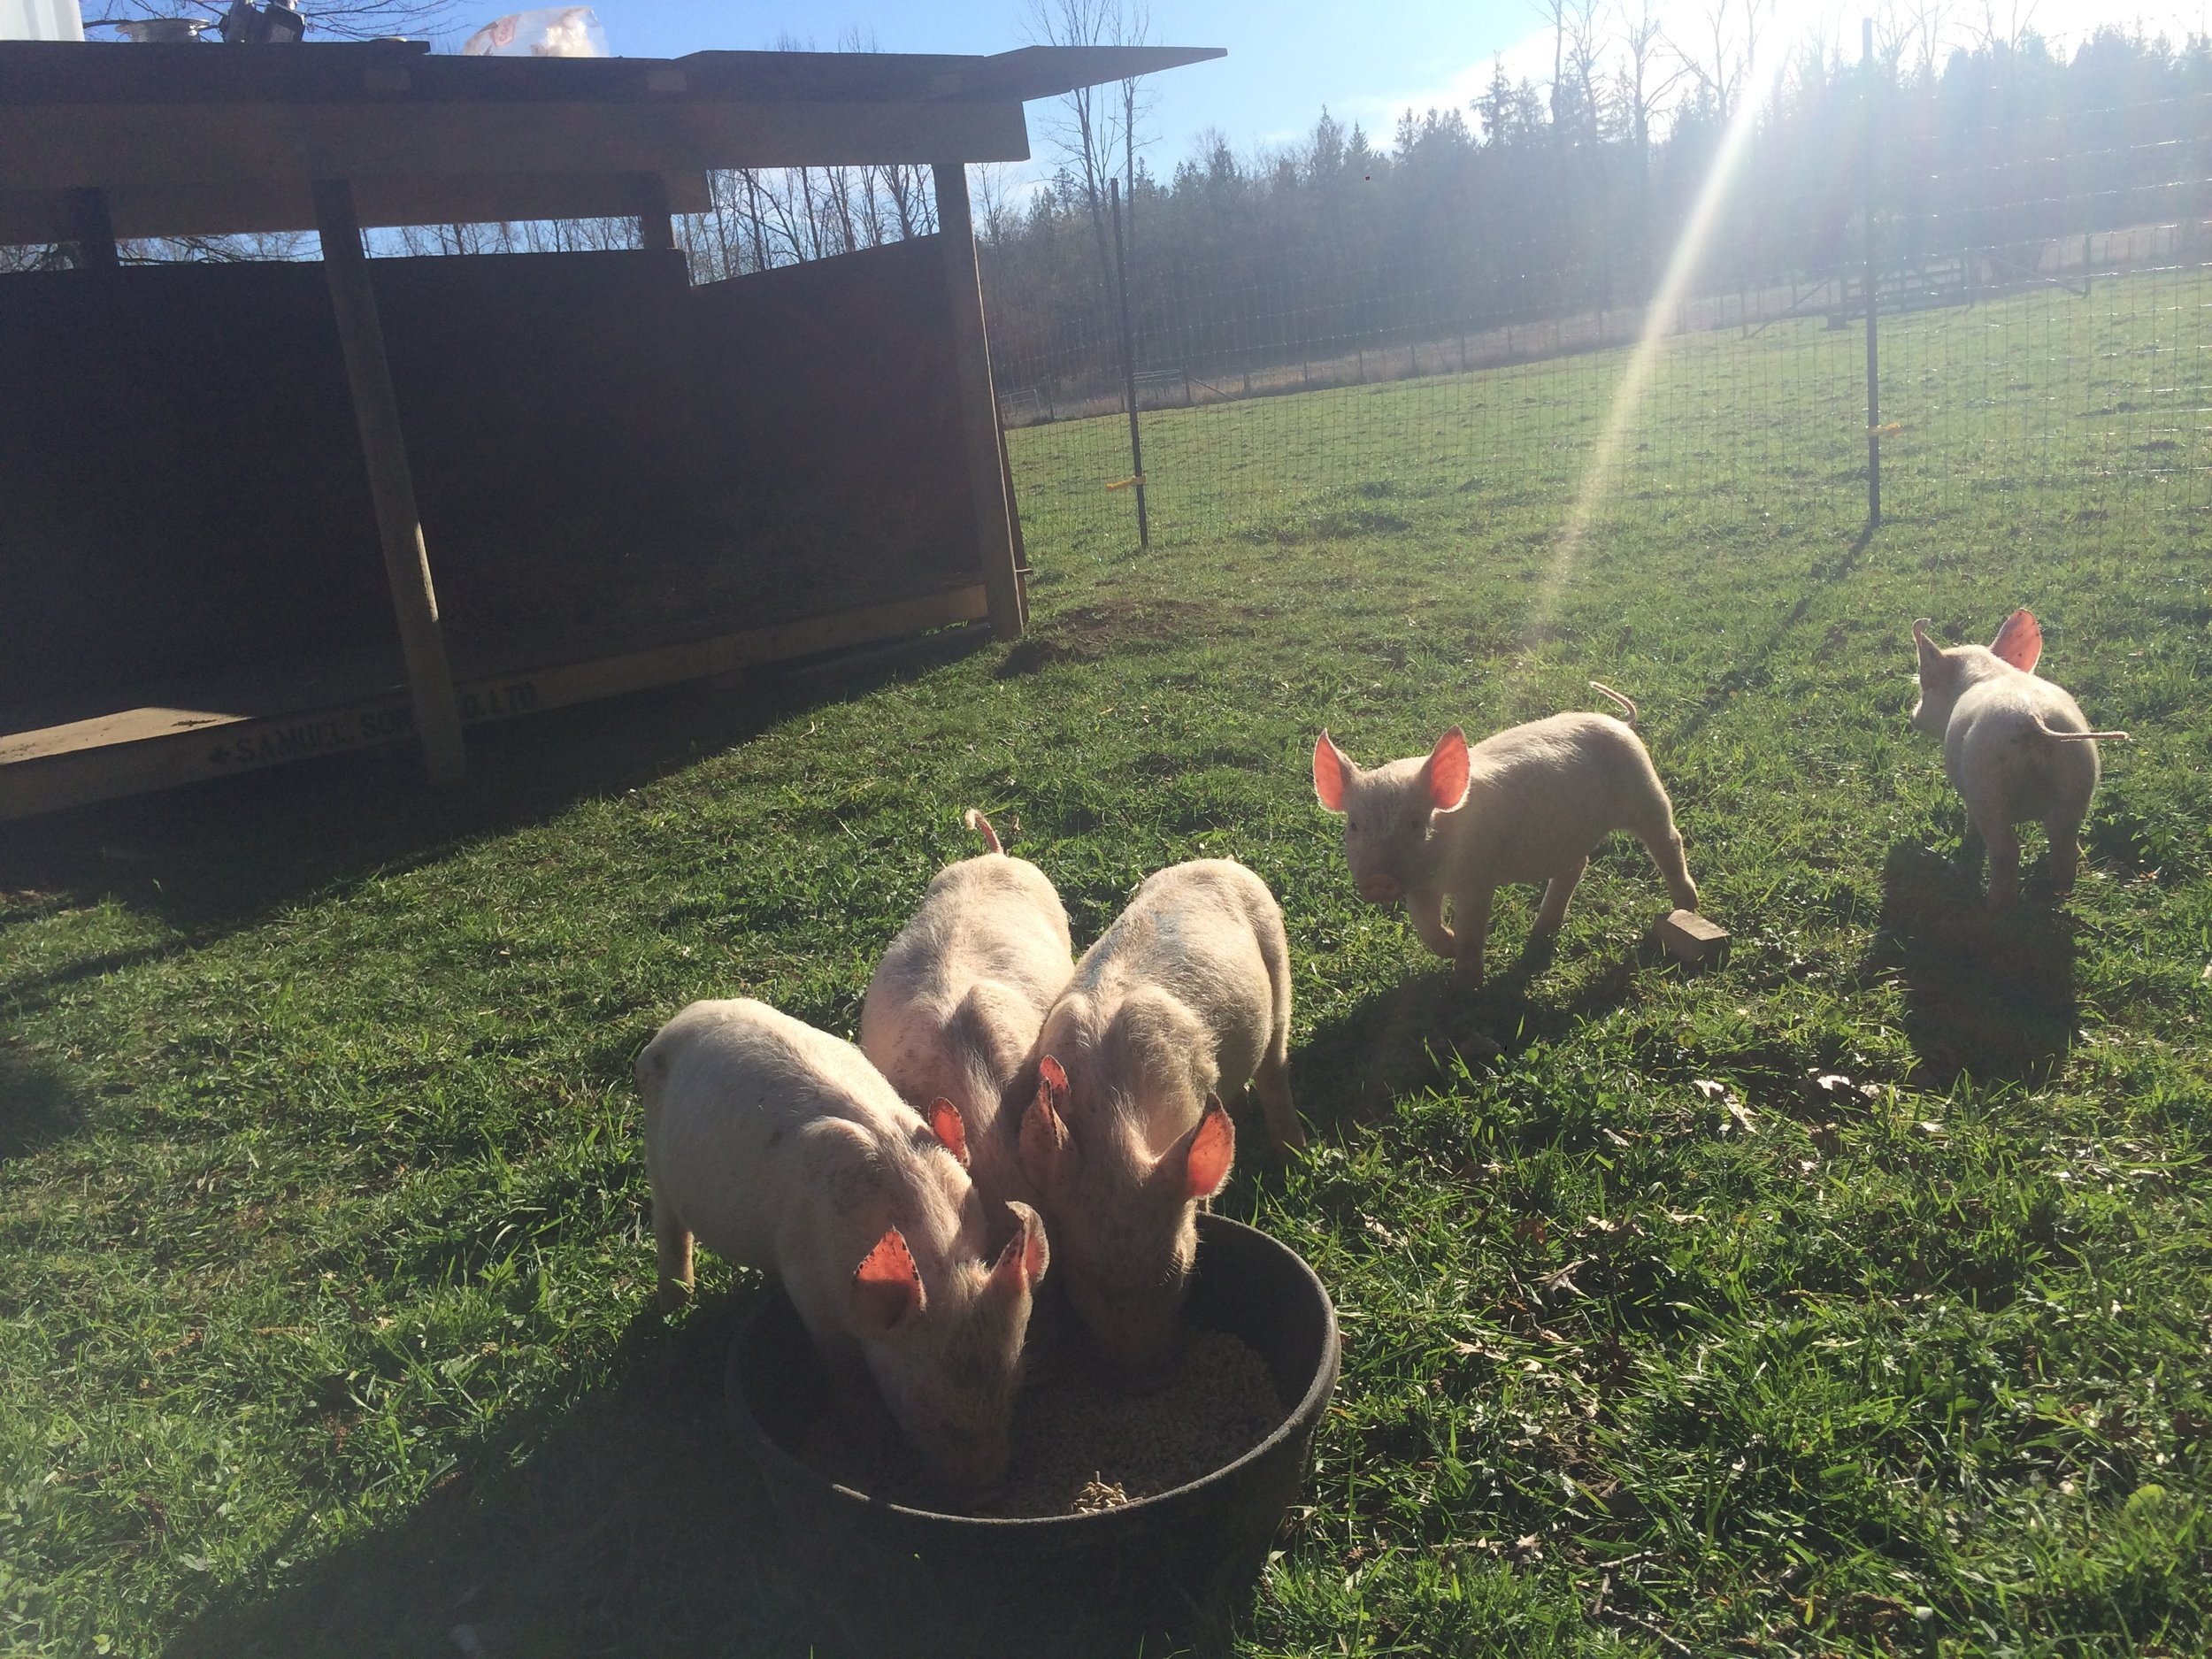 That pigs deserve to live in the light of day, outdoors, with other pigs to socialize with. -